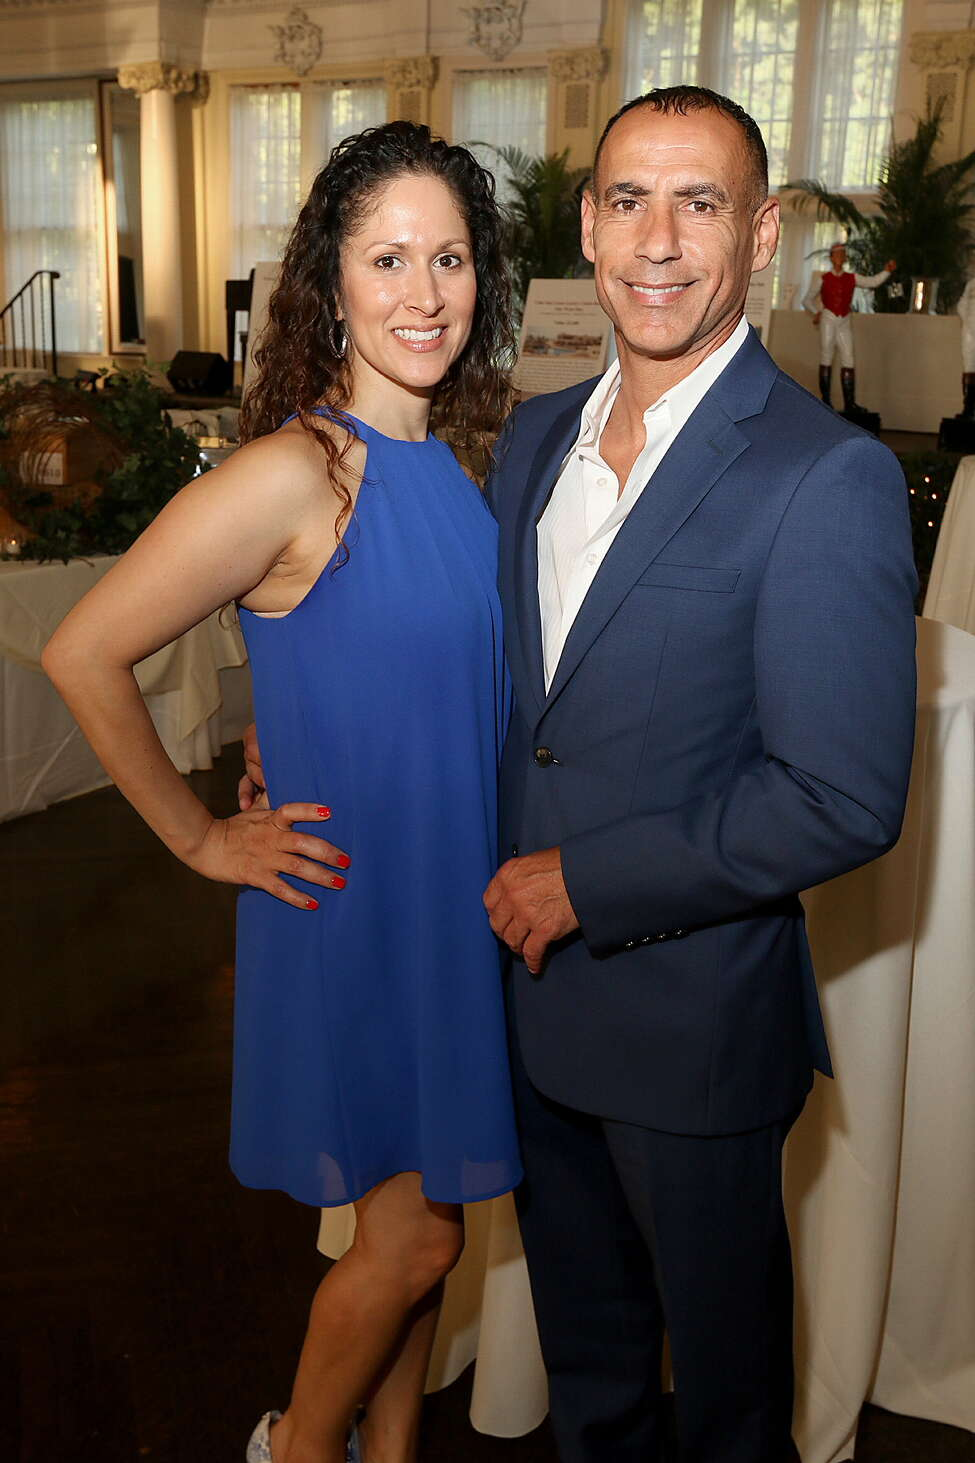 Were you Seen at the 18th Annual Travers Wine Tasting, a benefit for Senior Services of Albany, held at the Canfield Casino in Congress Park in Saratoga Springs on Friday, Aug. 26, 2016?